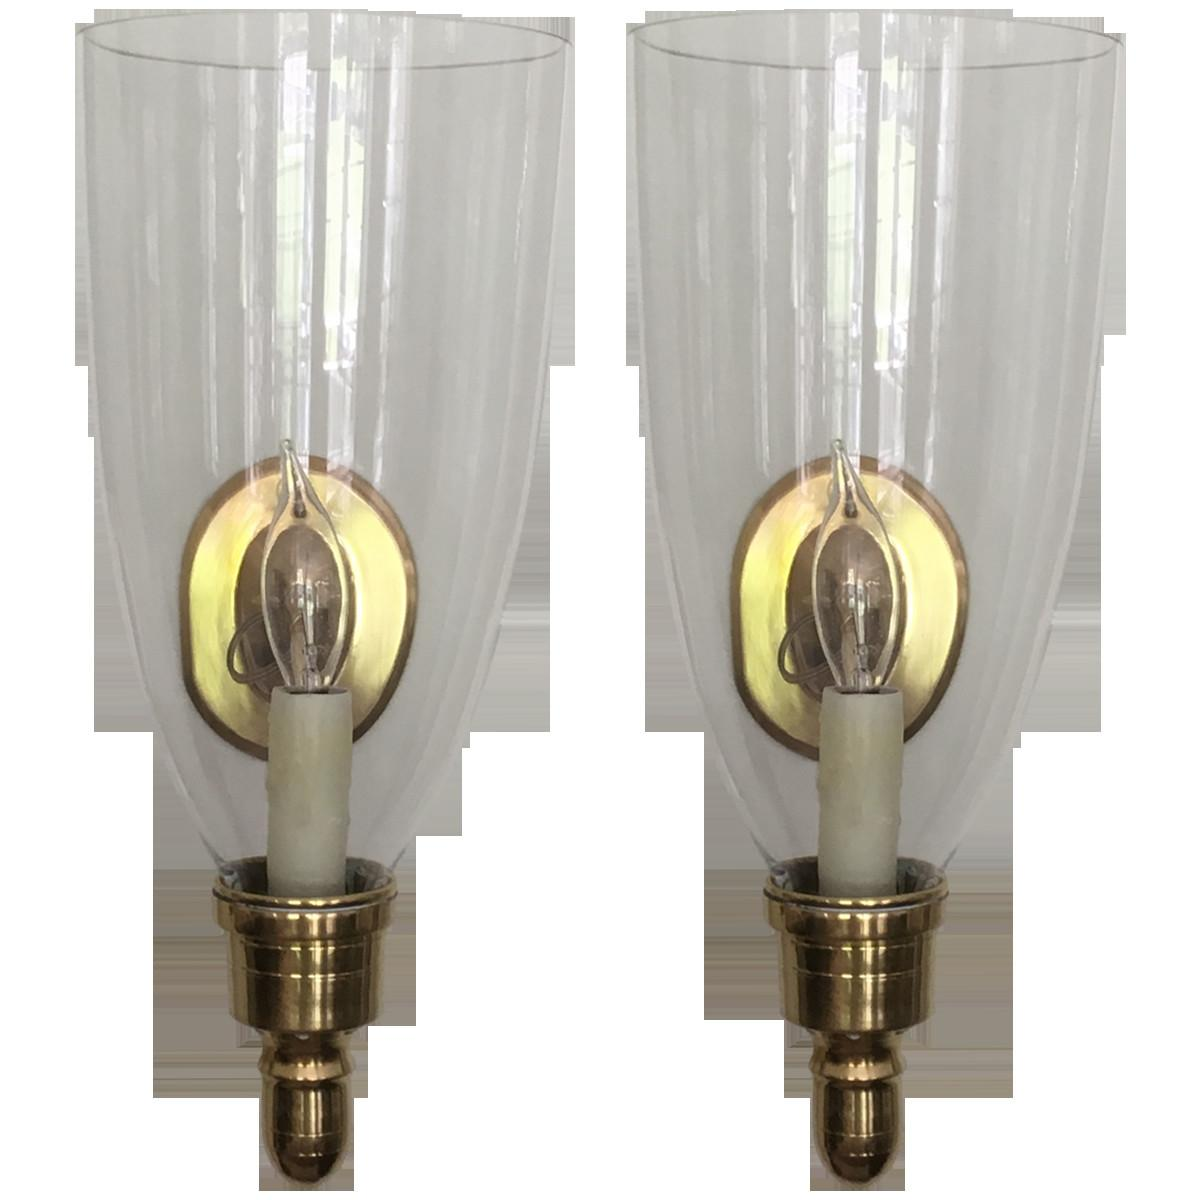 Polished Brass Wall Sconce Sconces Lights Lamps